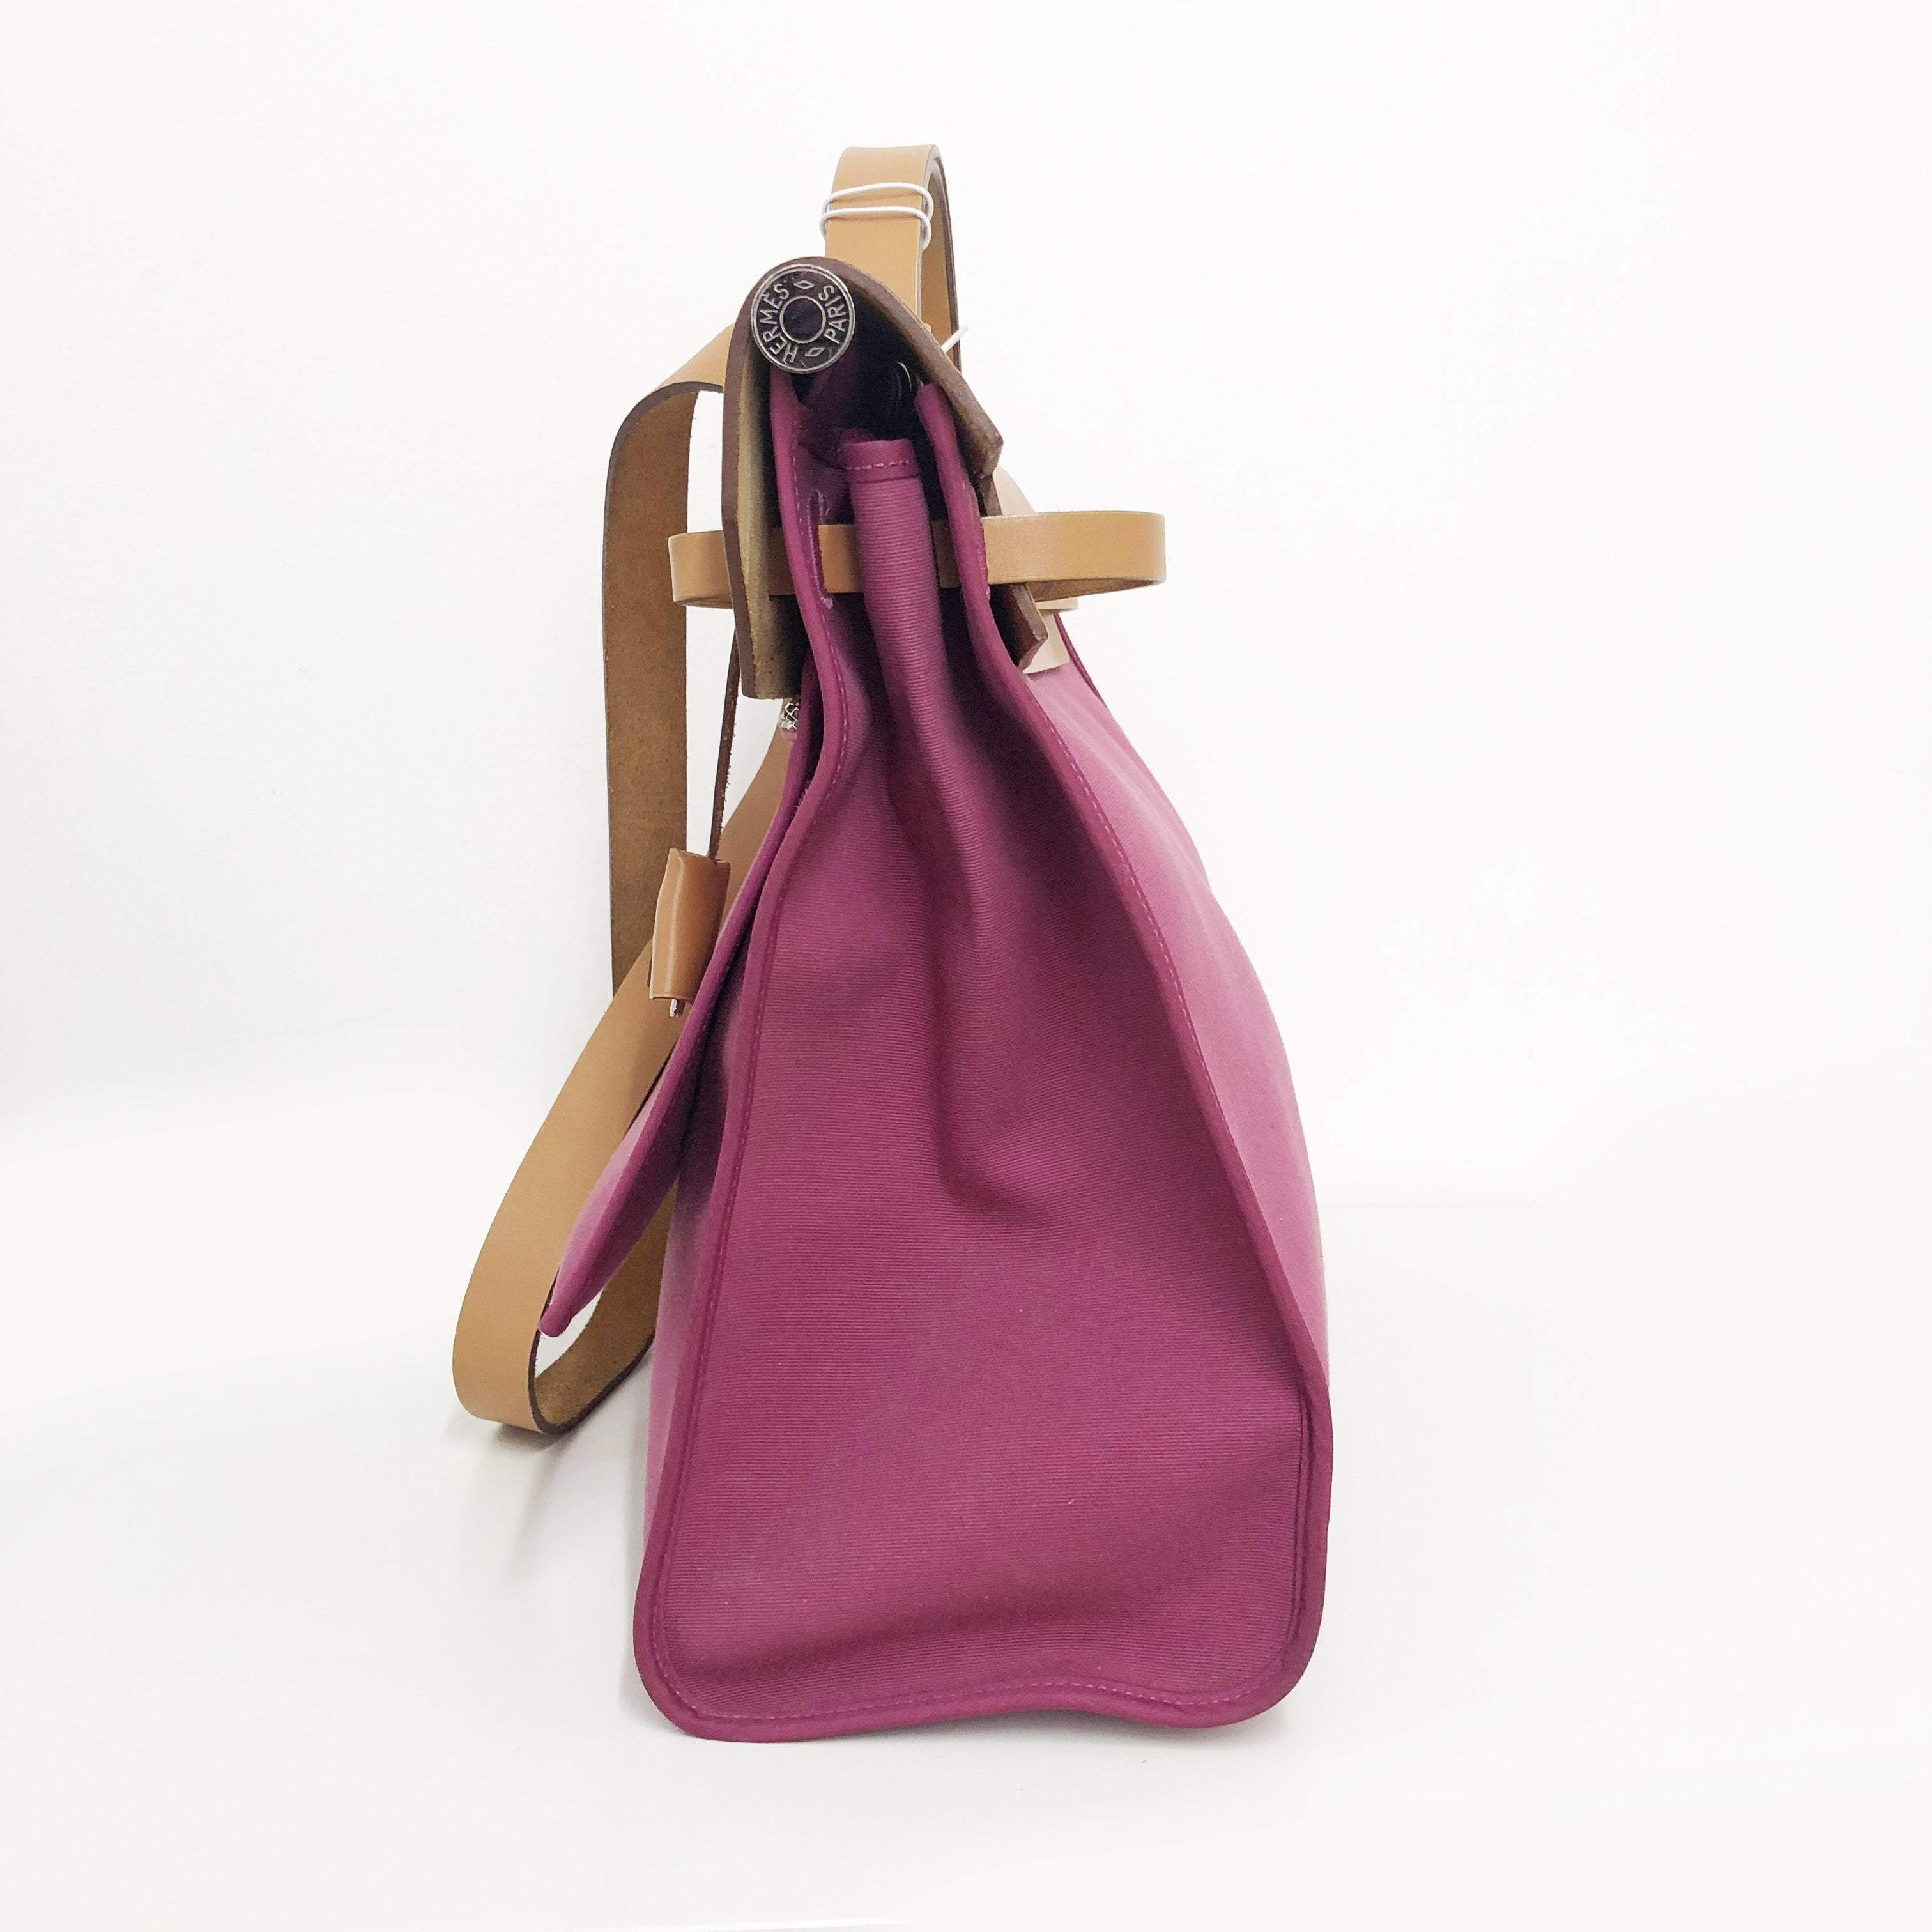 Hermes Pink Canvas and Natural Calfskin Leather Herbag size 39